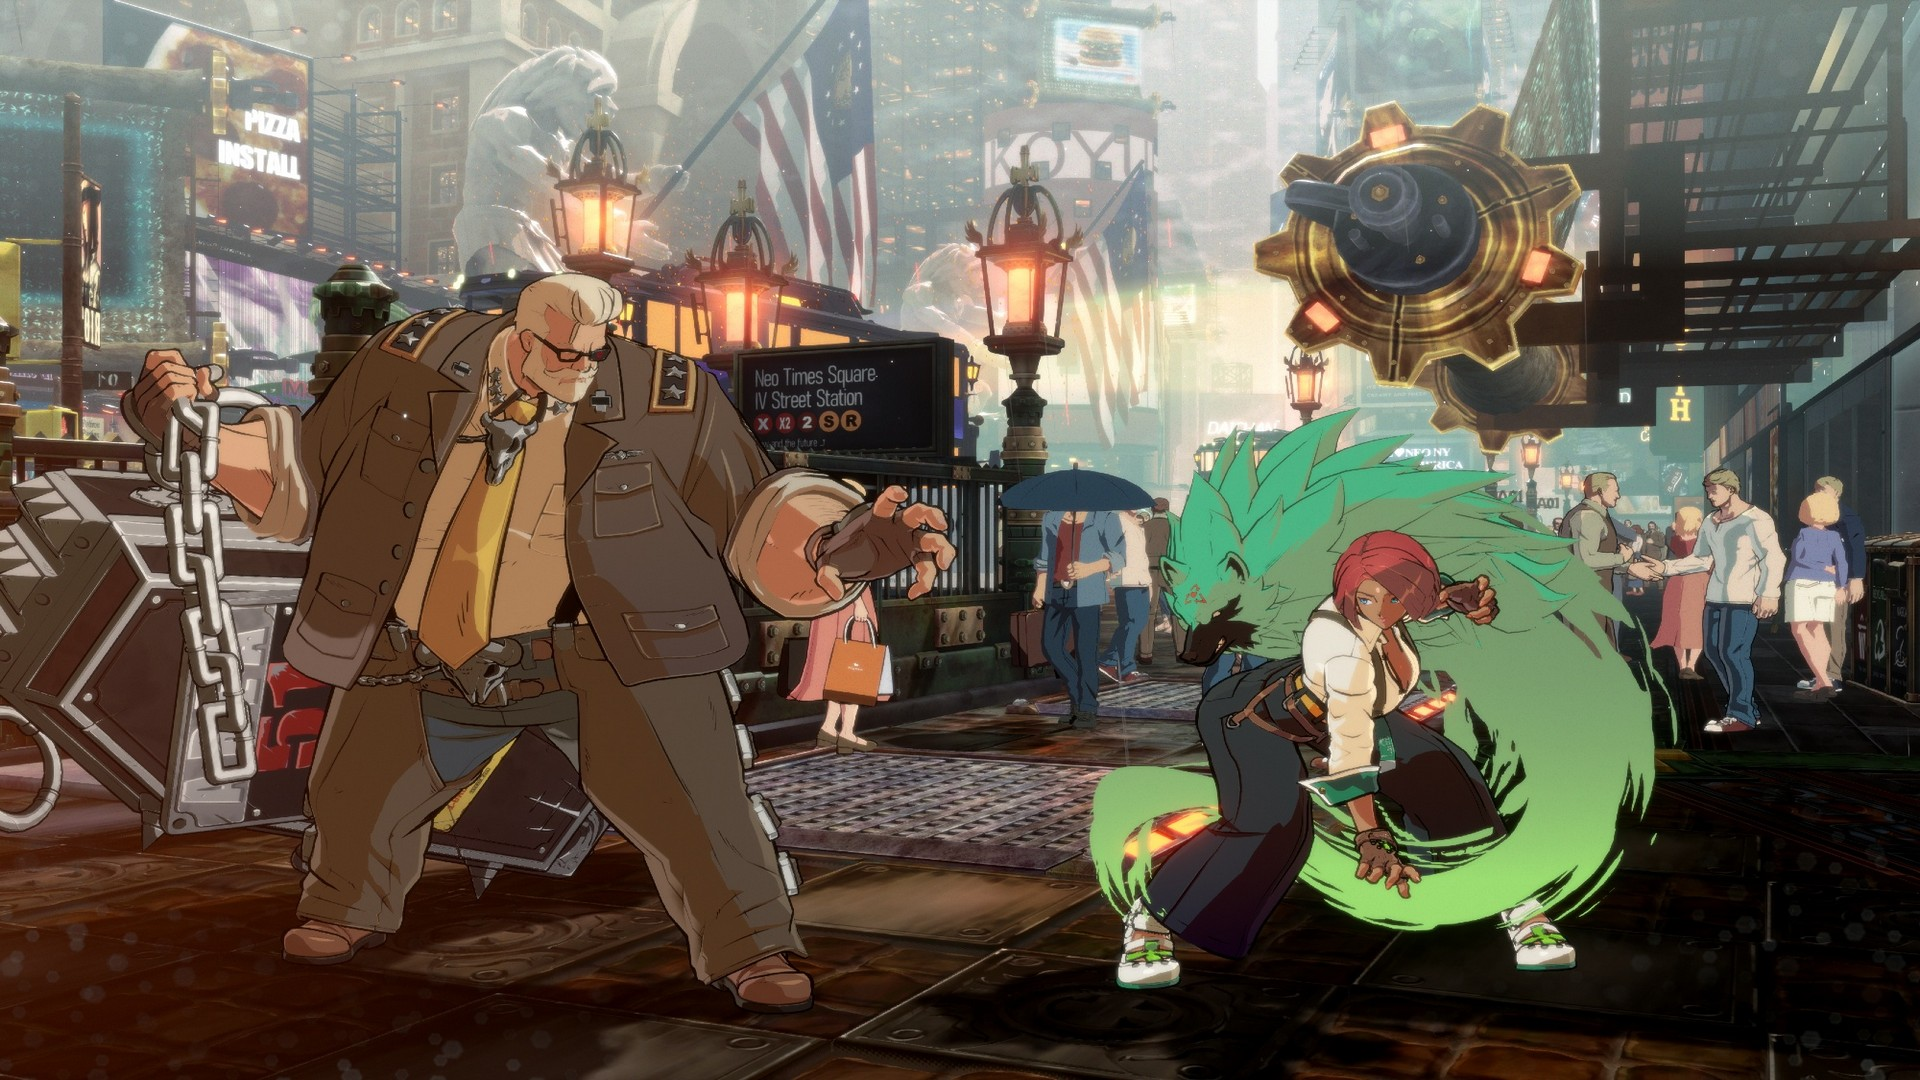 Goldlewis Dickinson Is The First Season Pass Character To Join Guilty Gear -Strive- Roster